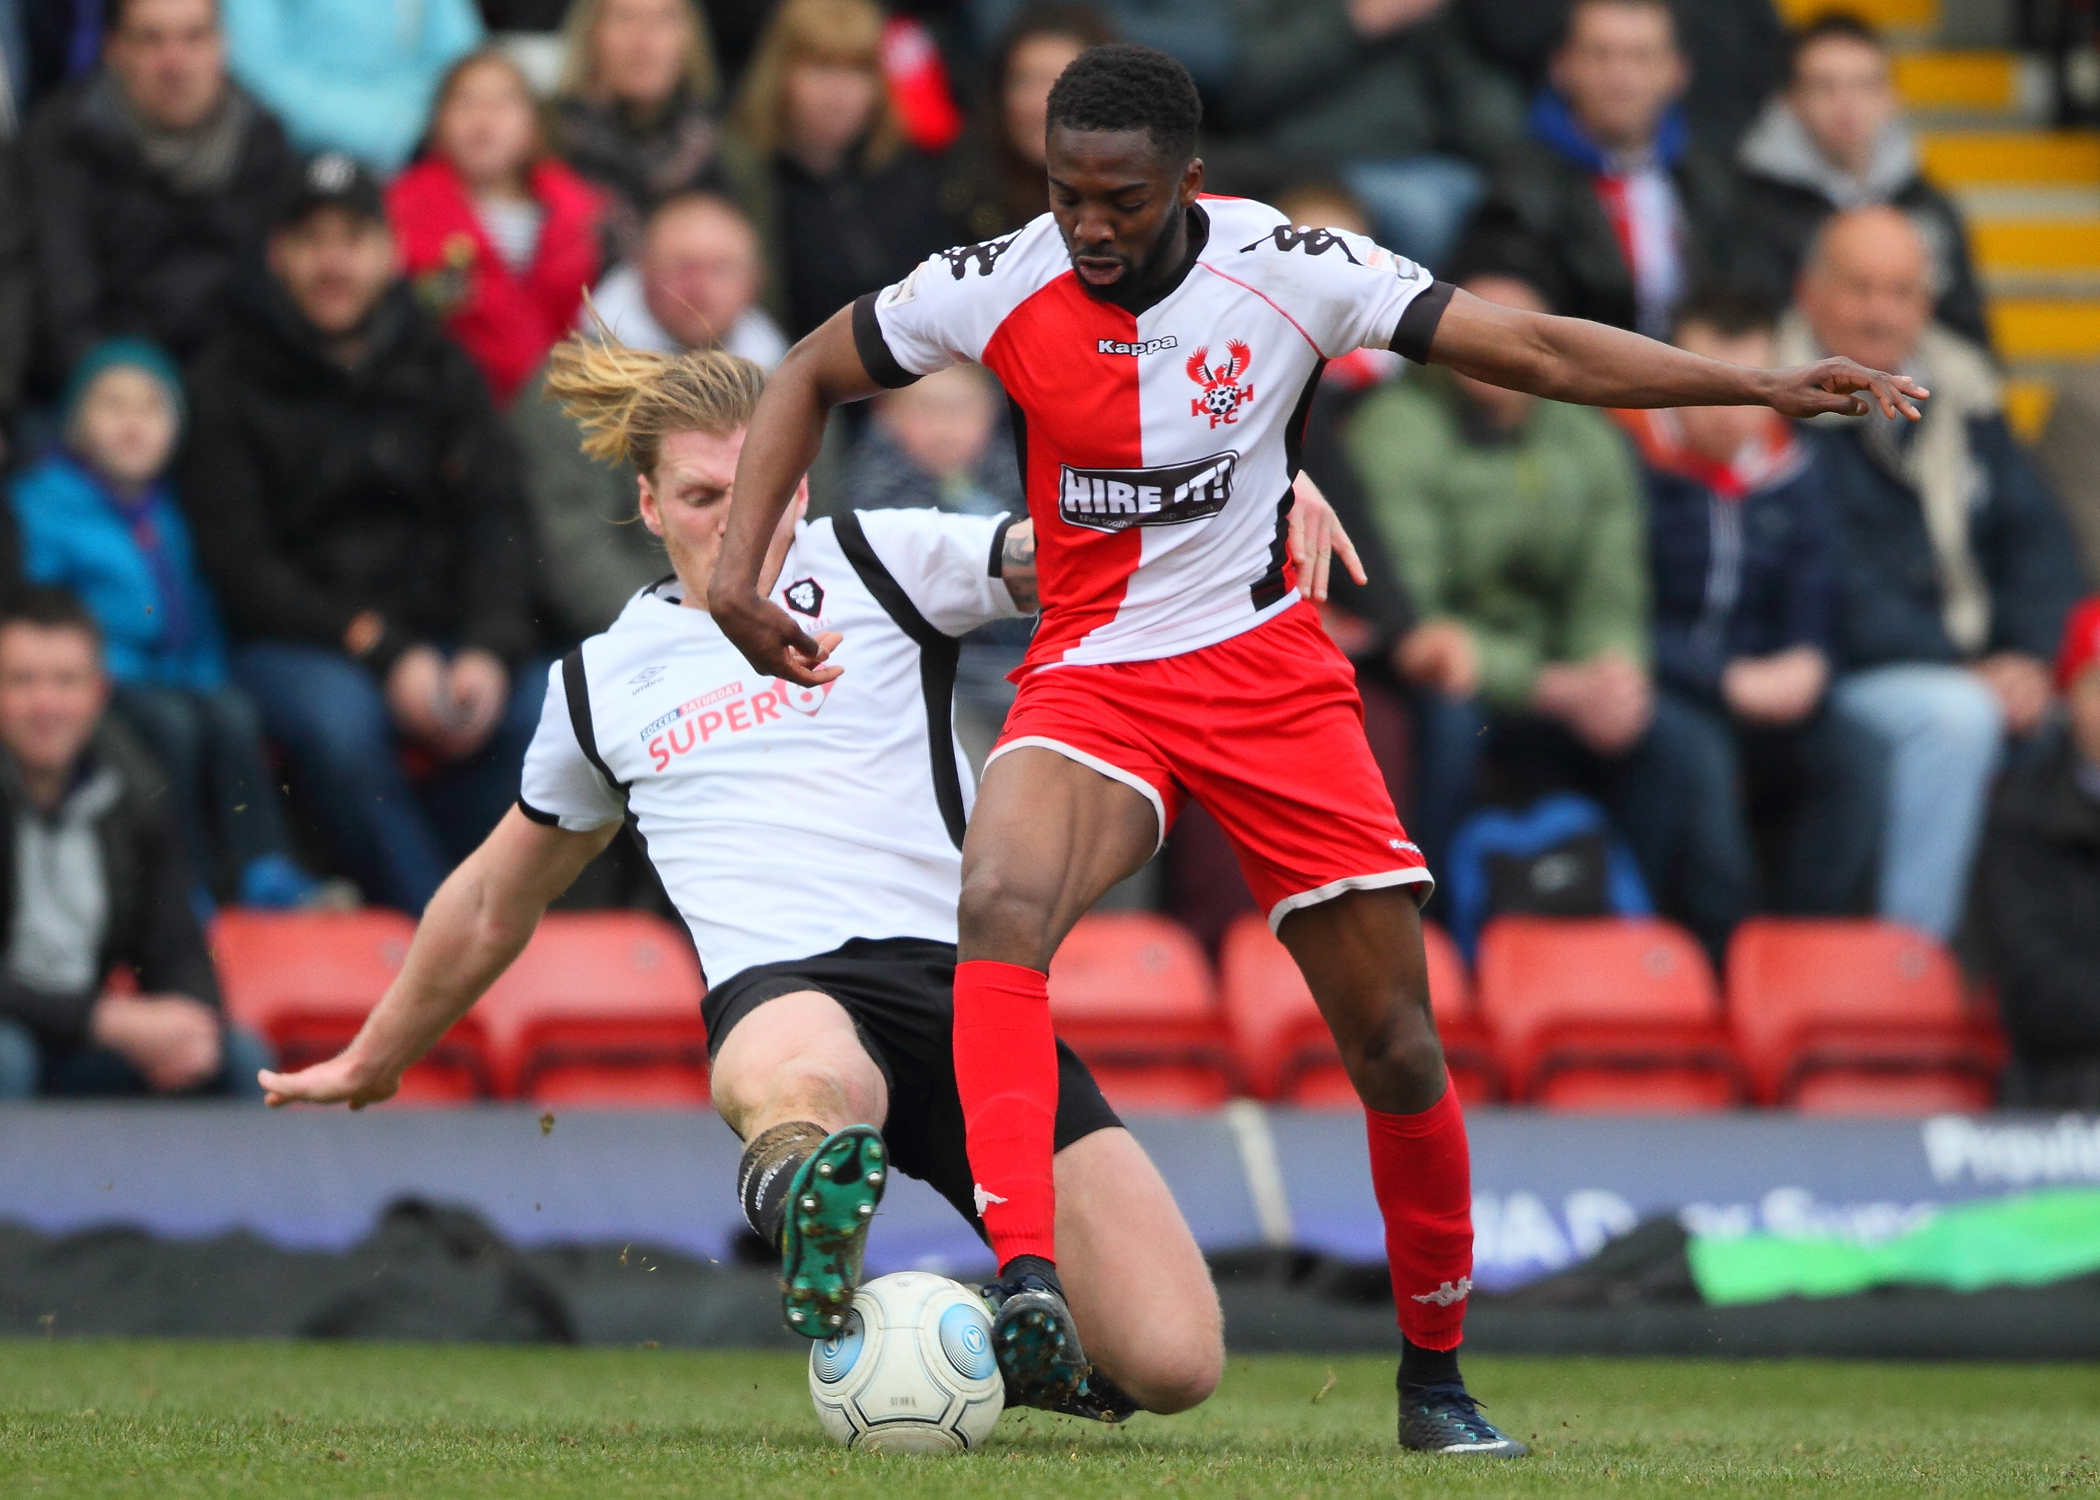 Mani Sonupe has committed to Harriers for next season. Photo by Adrian Hoskins